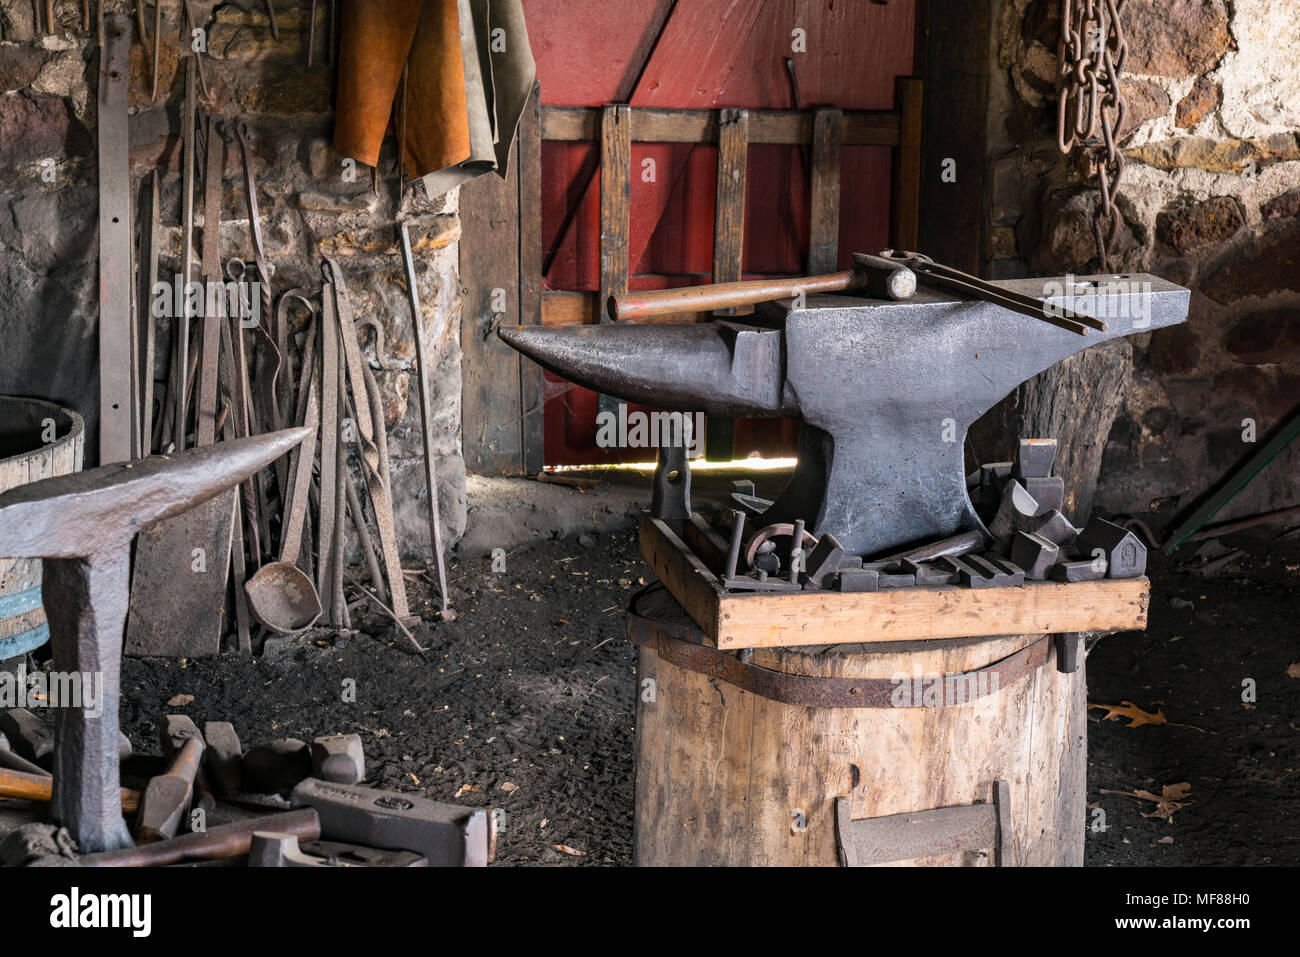 Tools on an Iron Anvil in an old Blacksmiths Shop Stock Photo